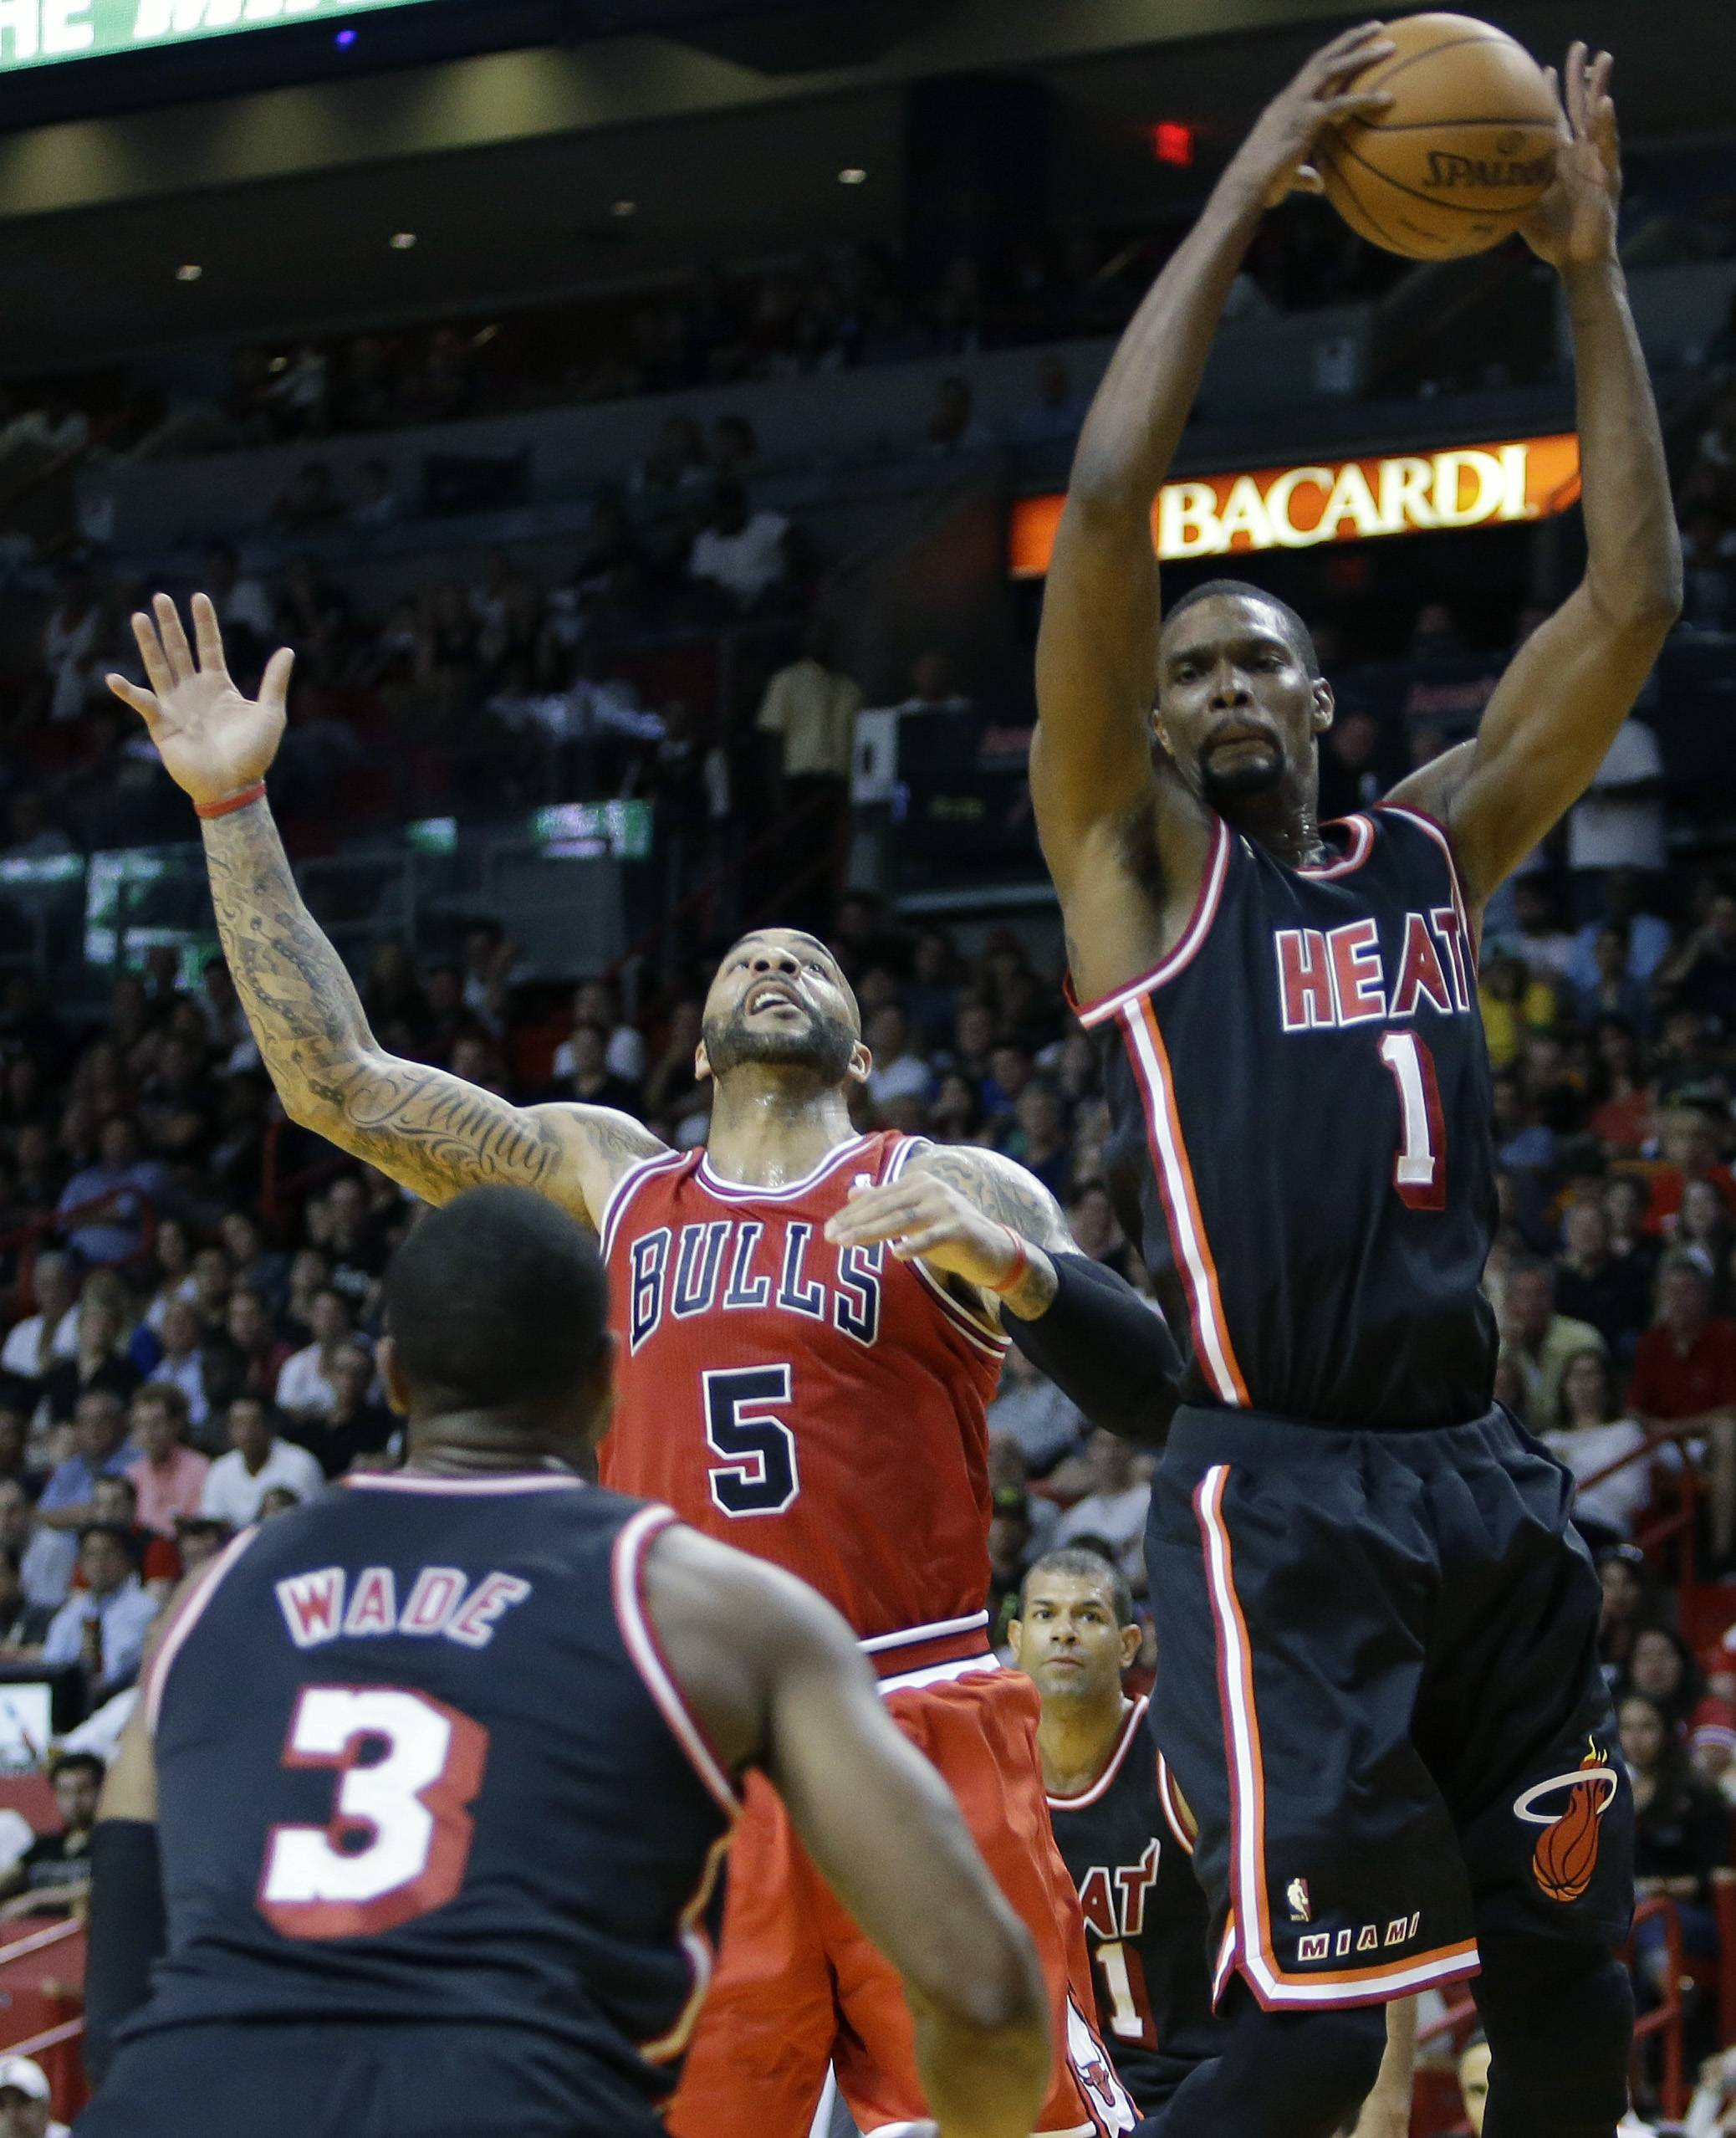 The Heat's Chris Bosh grabs a rebound over the Bulls' Carlos Boozer during the second half Sunday, when Miami went on a 16-2 run at the end of the third quarter to pull away.